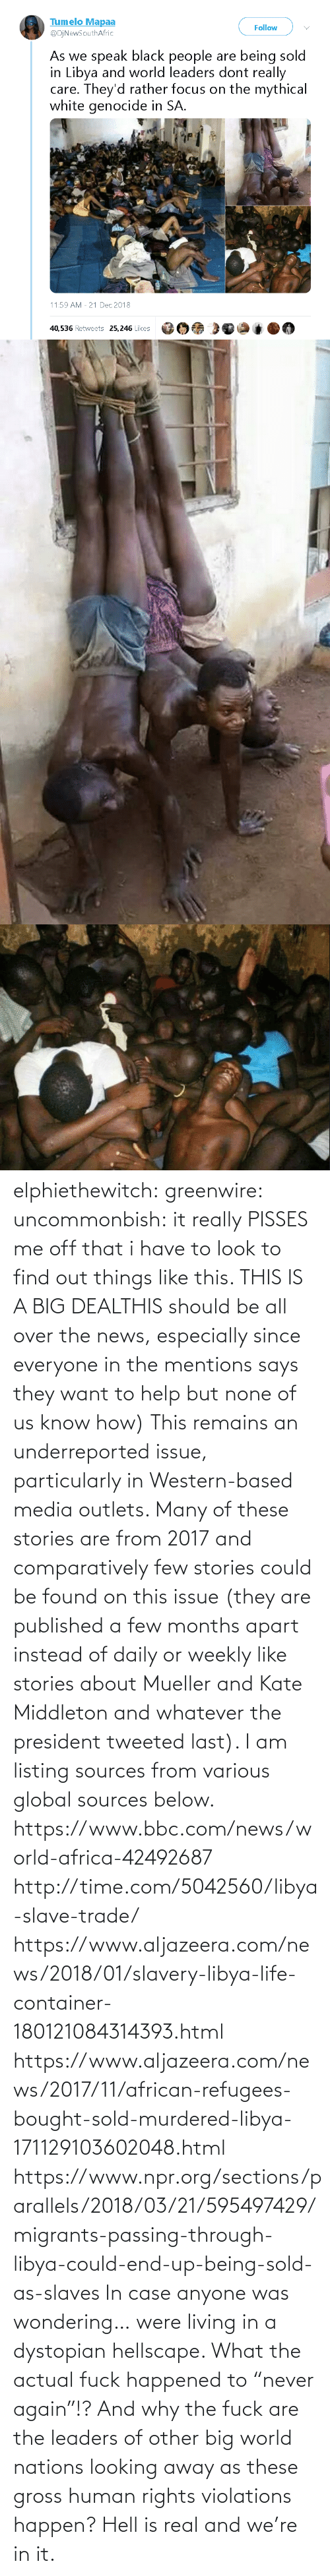 "big: elphiethewitch: greenwire:  uncommonbish:  it really PISSES me off that i have to look to find out things like this. THIS IS A BIG DEALTHIS should be all over the news, especially since everyone in the mentions says they want to help but none of us know how)  This remains an underreported issue, particularly in Western-based media outlets. Many of these stories are from 2017 and comparatively few stories could be found on this issue (they are published a few months apart instead of daily or weekly like stories about Mueller and Kate Middleton and whatever the president tweeted last). I am listing sources from various global sources below.  https://www.bbc.com/news/world-africa-42492687 http://time.com/5042560/libya-slave-trade/ https://www.aljazeera.com/news/2018/01/slavery-libya-life-container-180121084314393.html https://www.aljazeera.com/news/2017/11/african-refugees-bought-sold-murdered-libya-171129103602048.html https://www.npr.org/sections/parallels/2018/03/21/595497429/migrants-passing-through-libya-could-end-up-being-sold-as-slaves   In case anyone was wondering… were living in a dystopian hellscape.  What the actual fuck happened to ""never again""!? And why the fuck are the leaders of other big world nations looking away as these gross human rights violations happen?  Hell is real and we're in it."